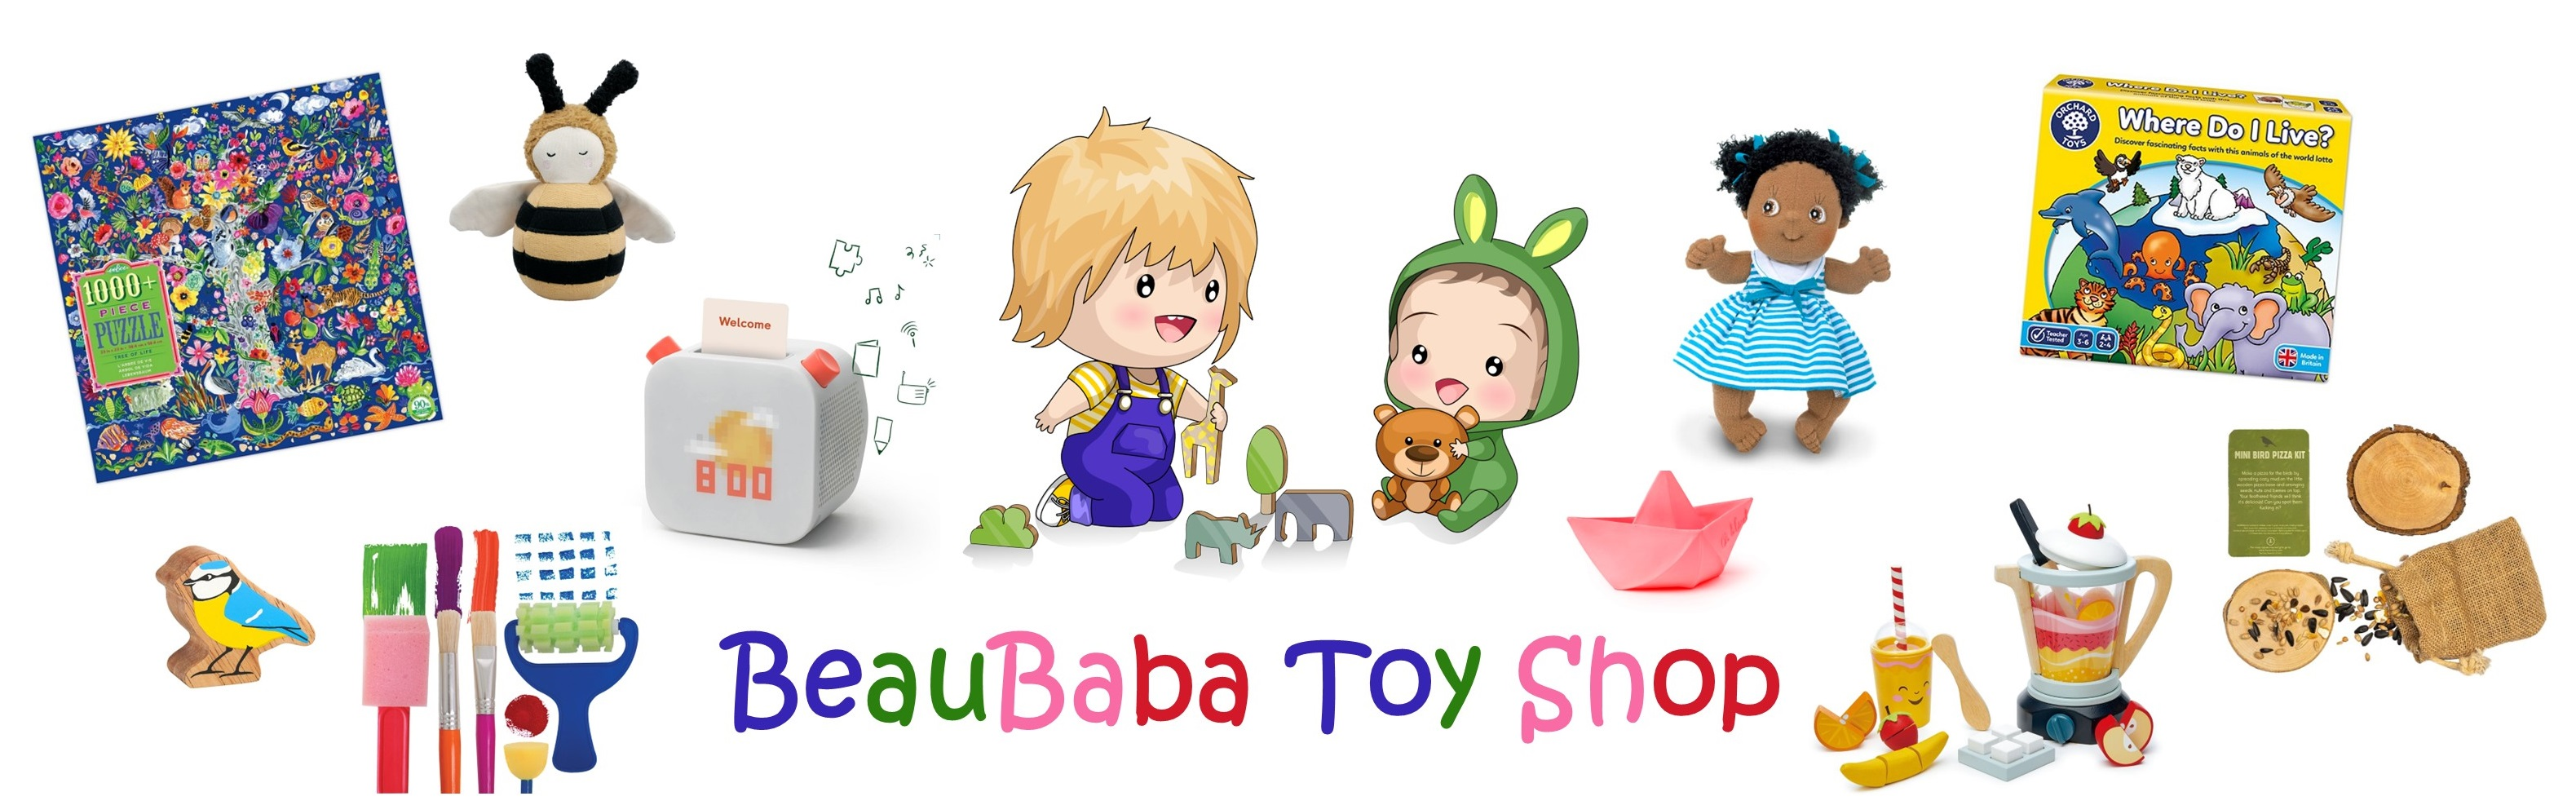 BeauBaba Toy Shop